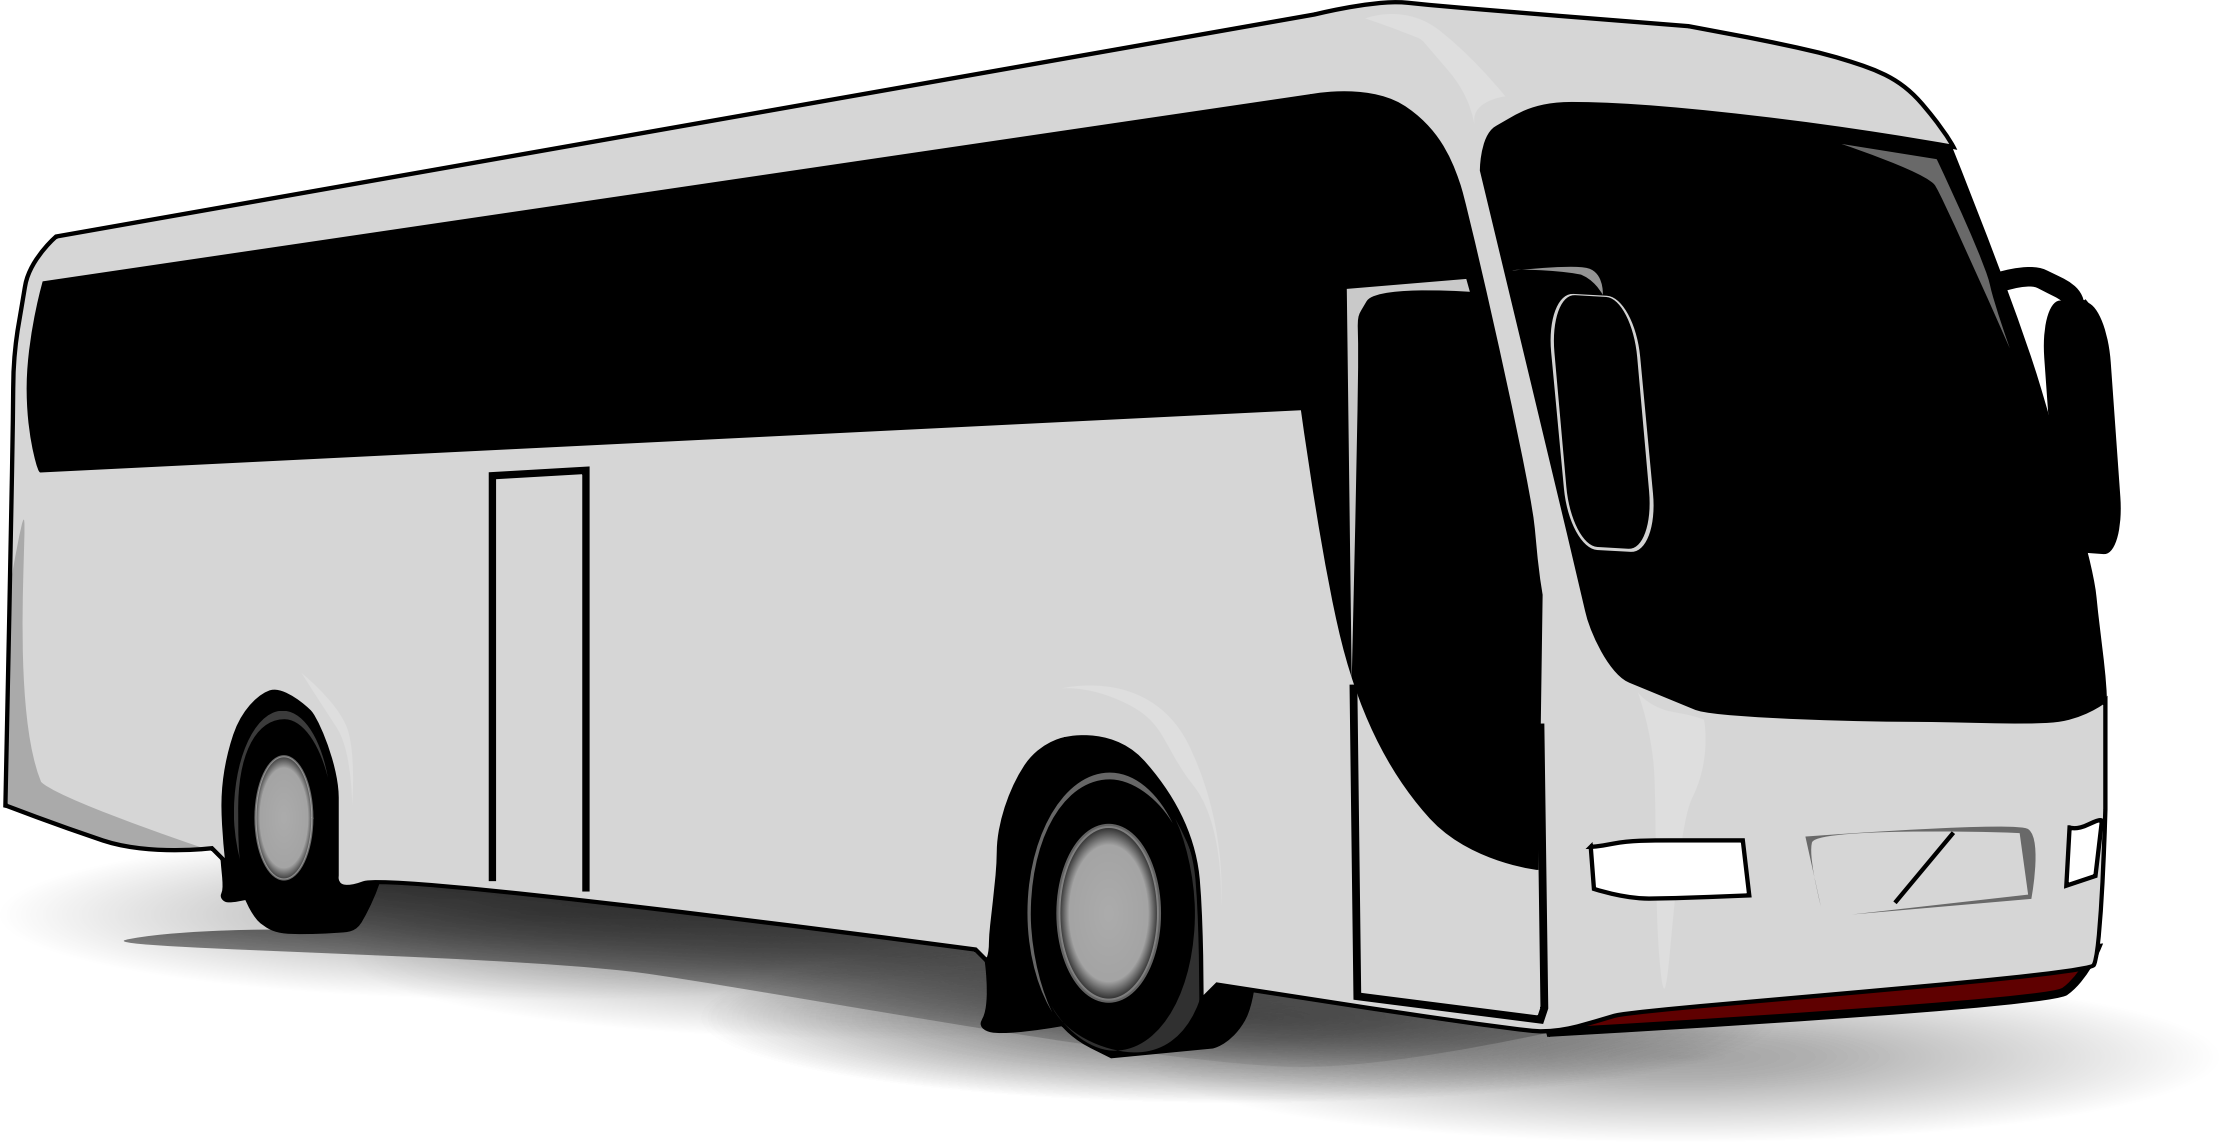 2219x1142 Collection Of Free Bus Vector Party. Download On Ubisafe